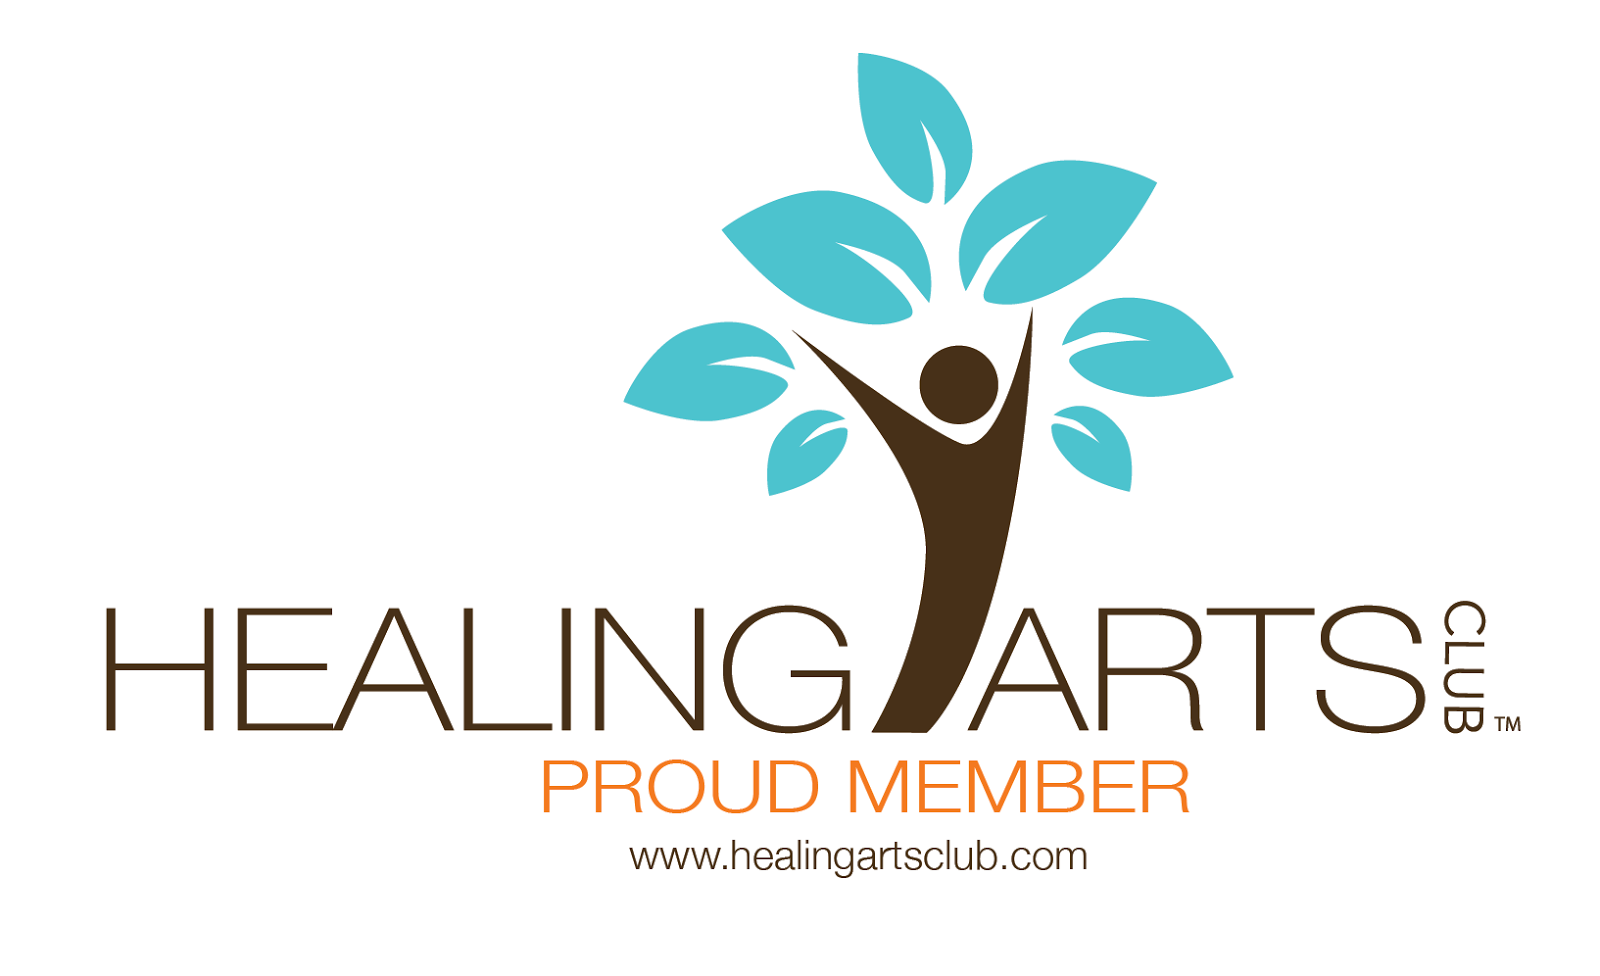 Official author of Healthwise at the Healing Arts Club